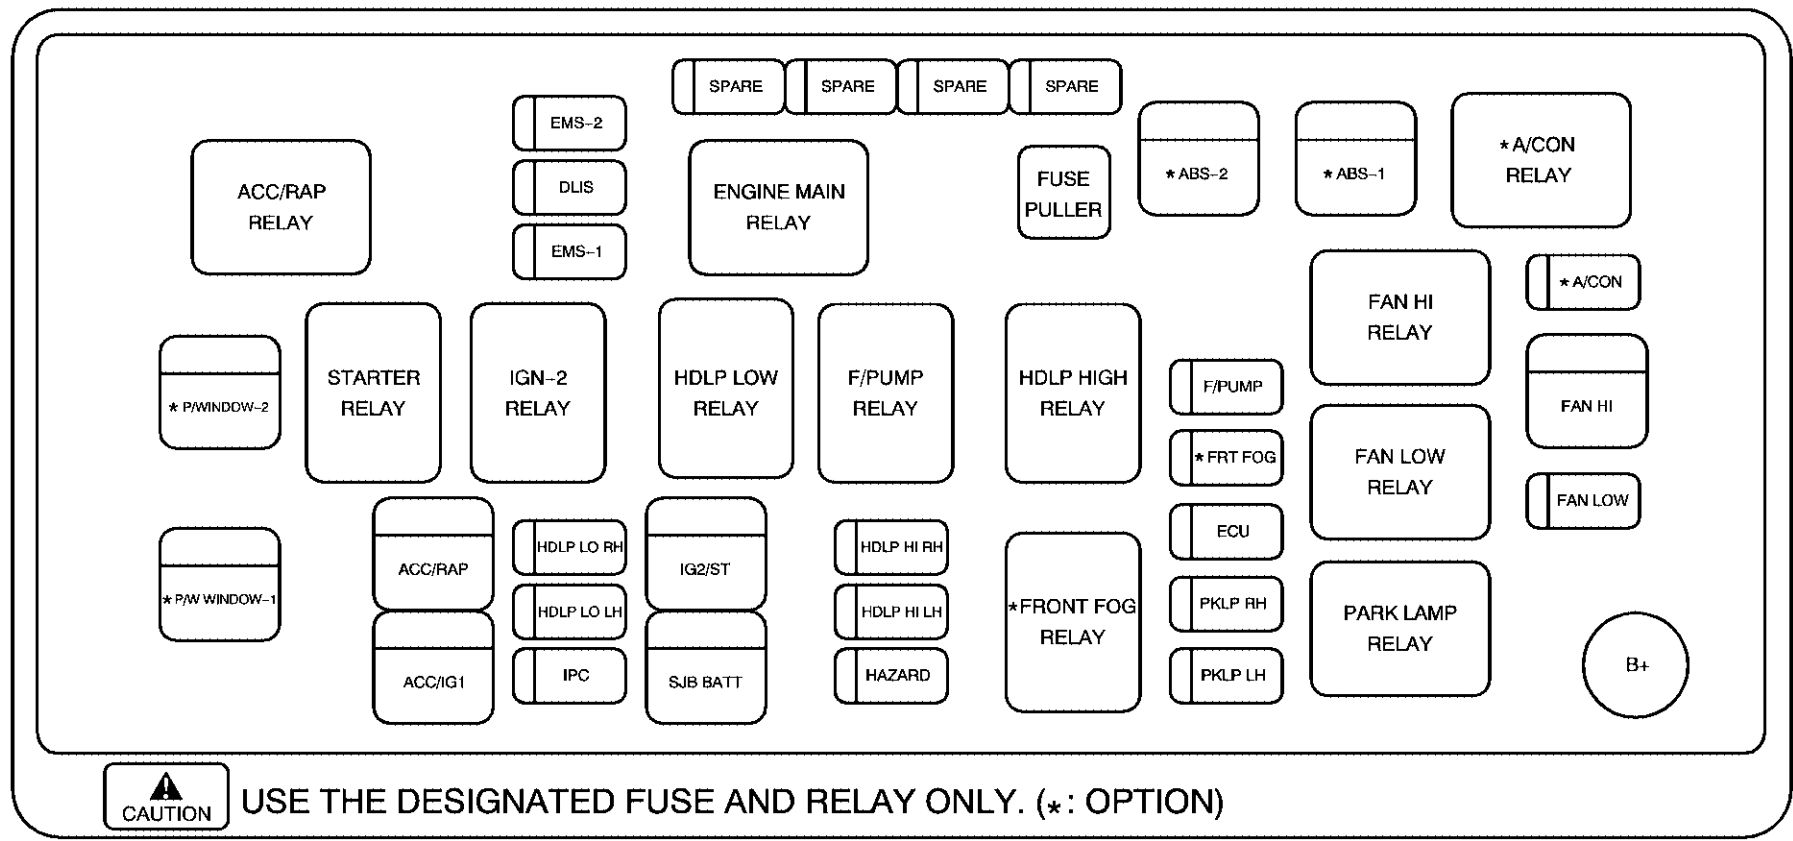 Fuse Panel Diagram For 2005 Chevy Aveo